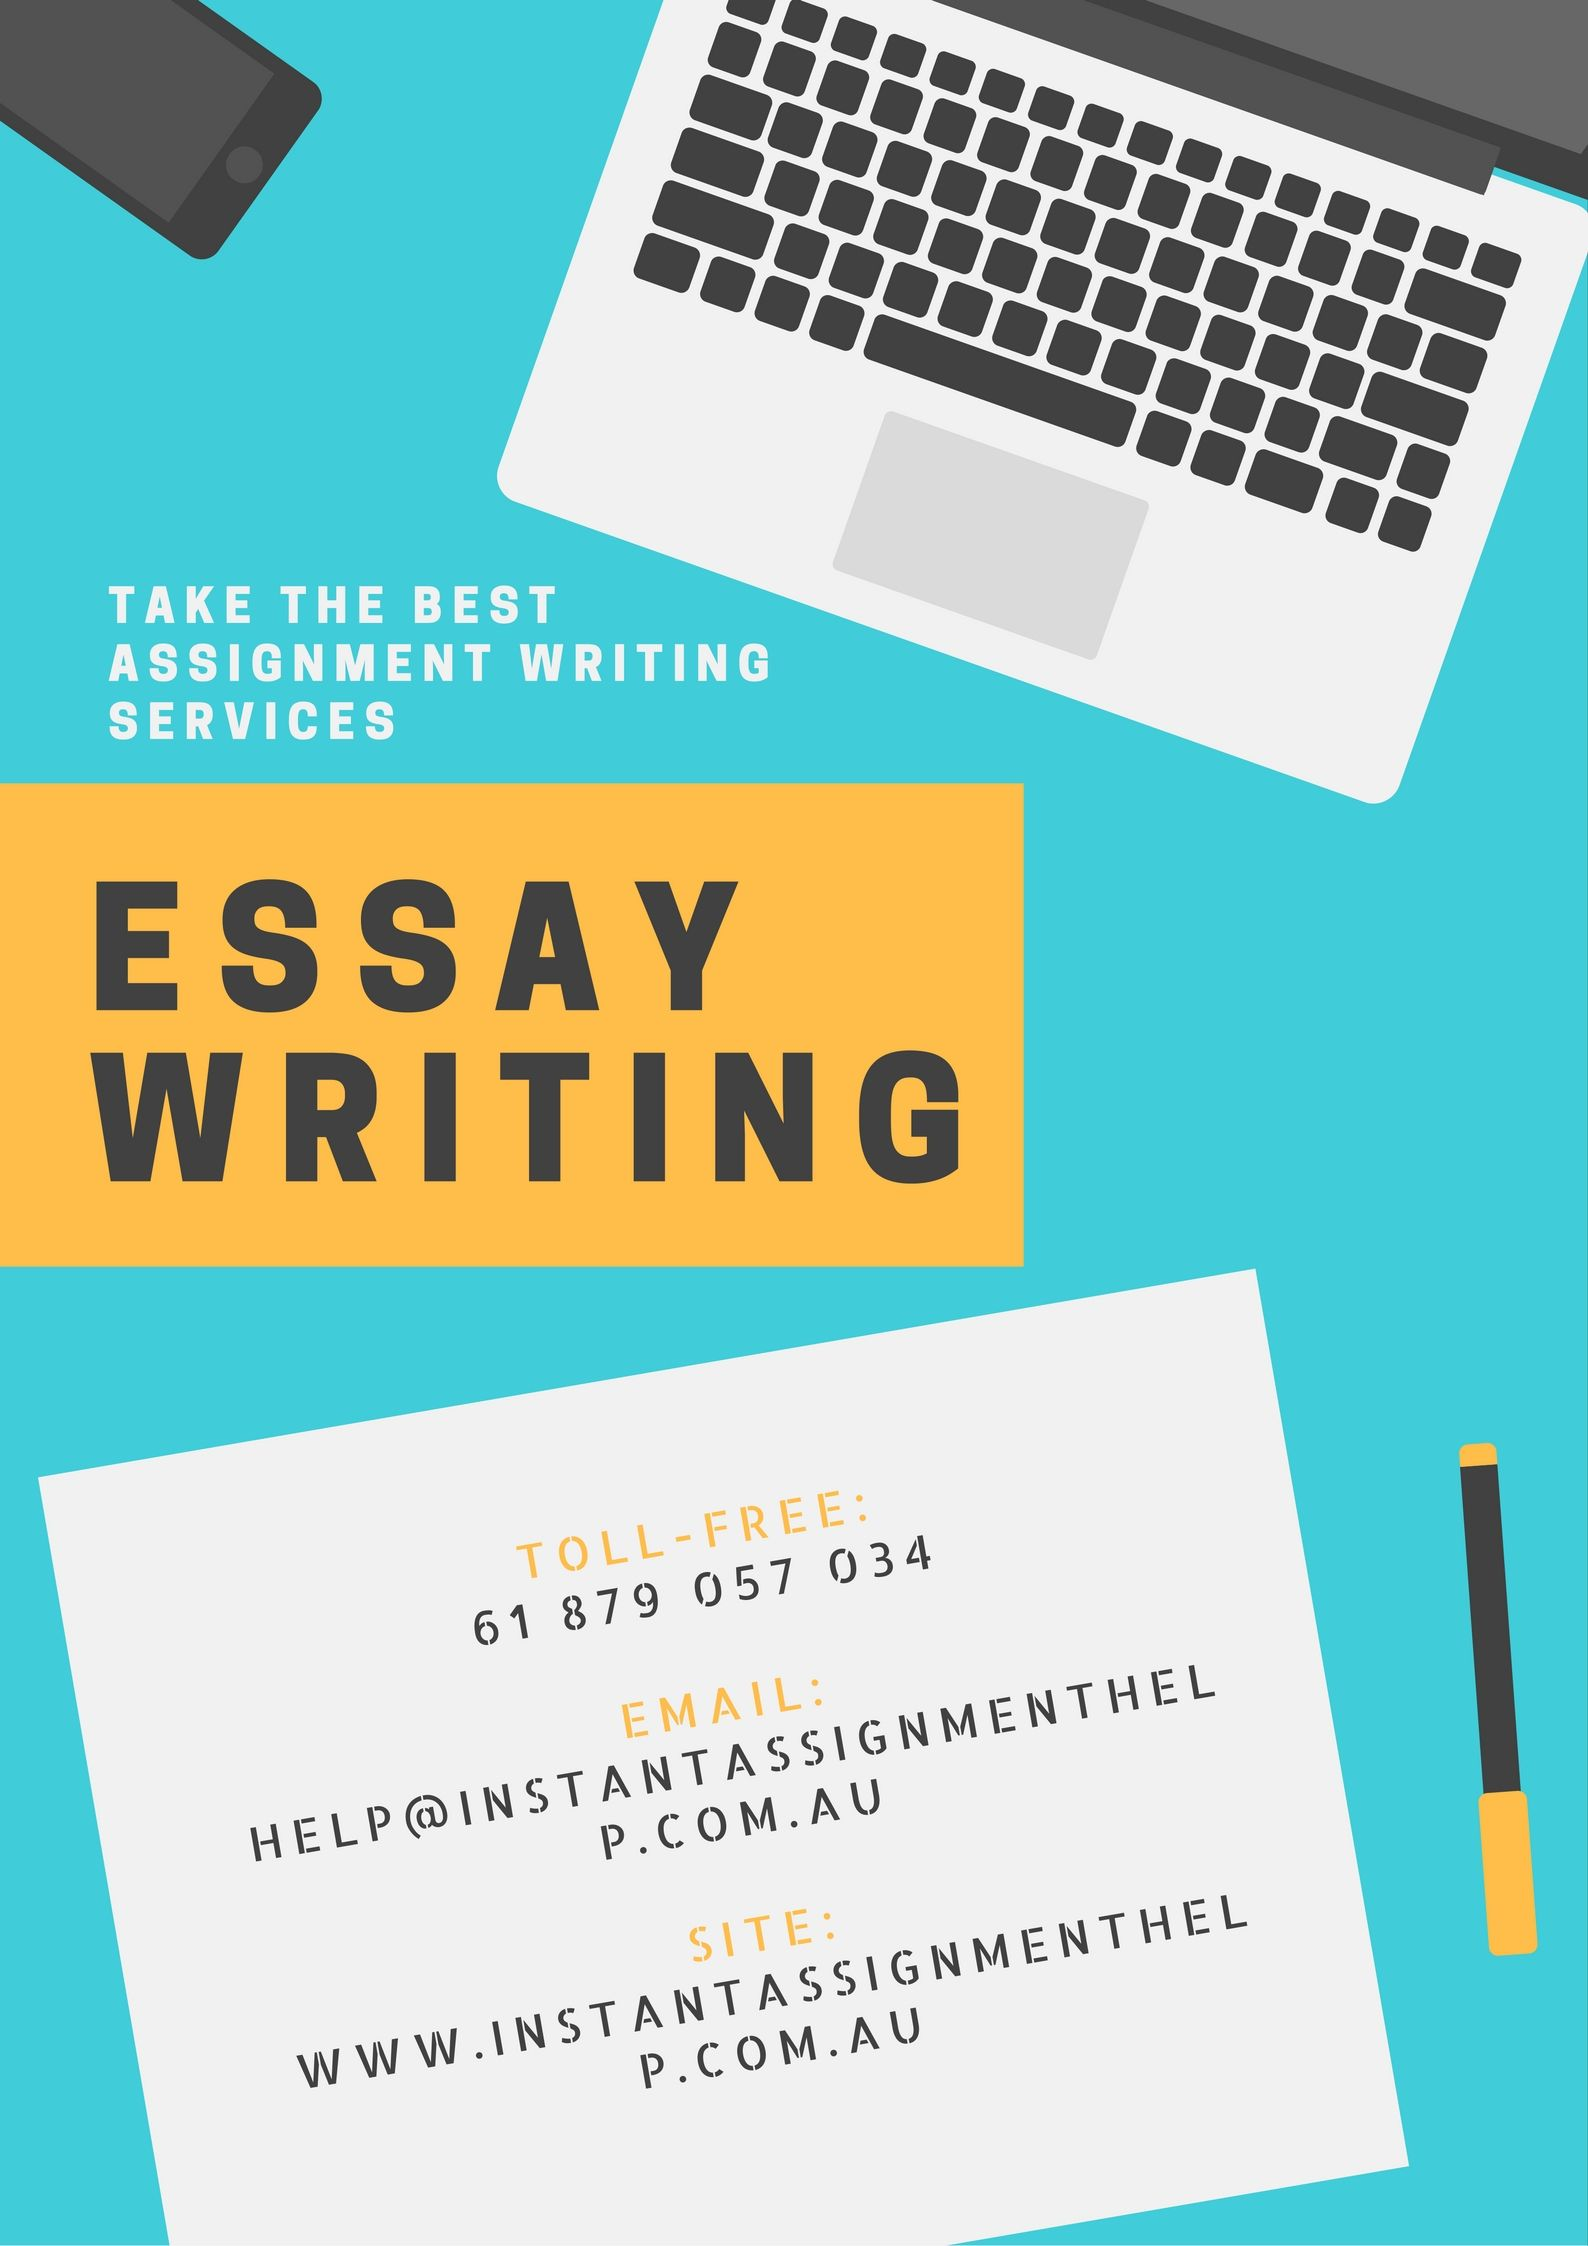 004 Essay Writing Help Example Frightening For Middle School Near Me Full